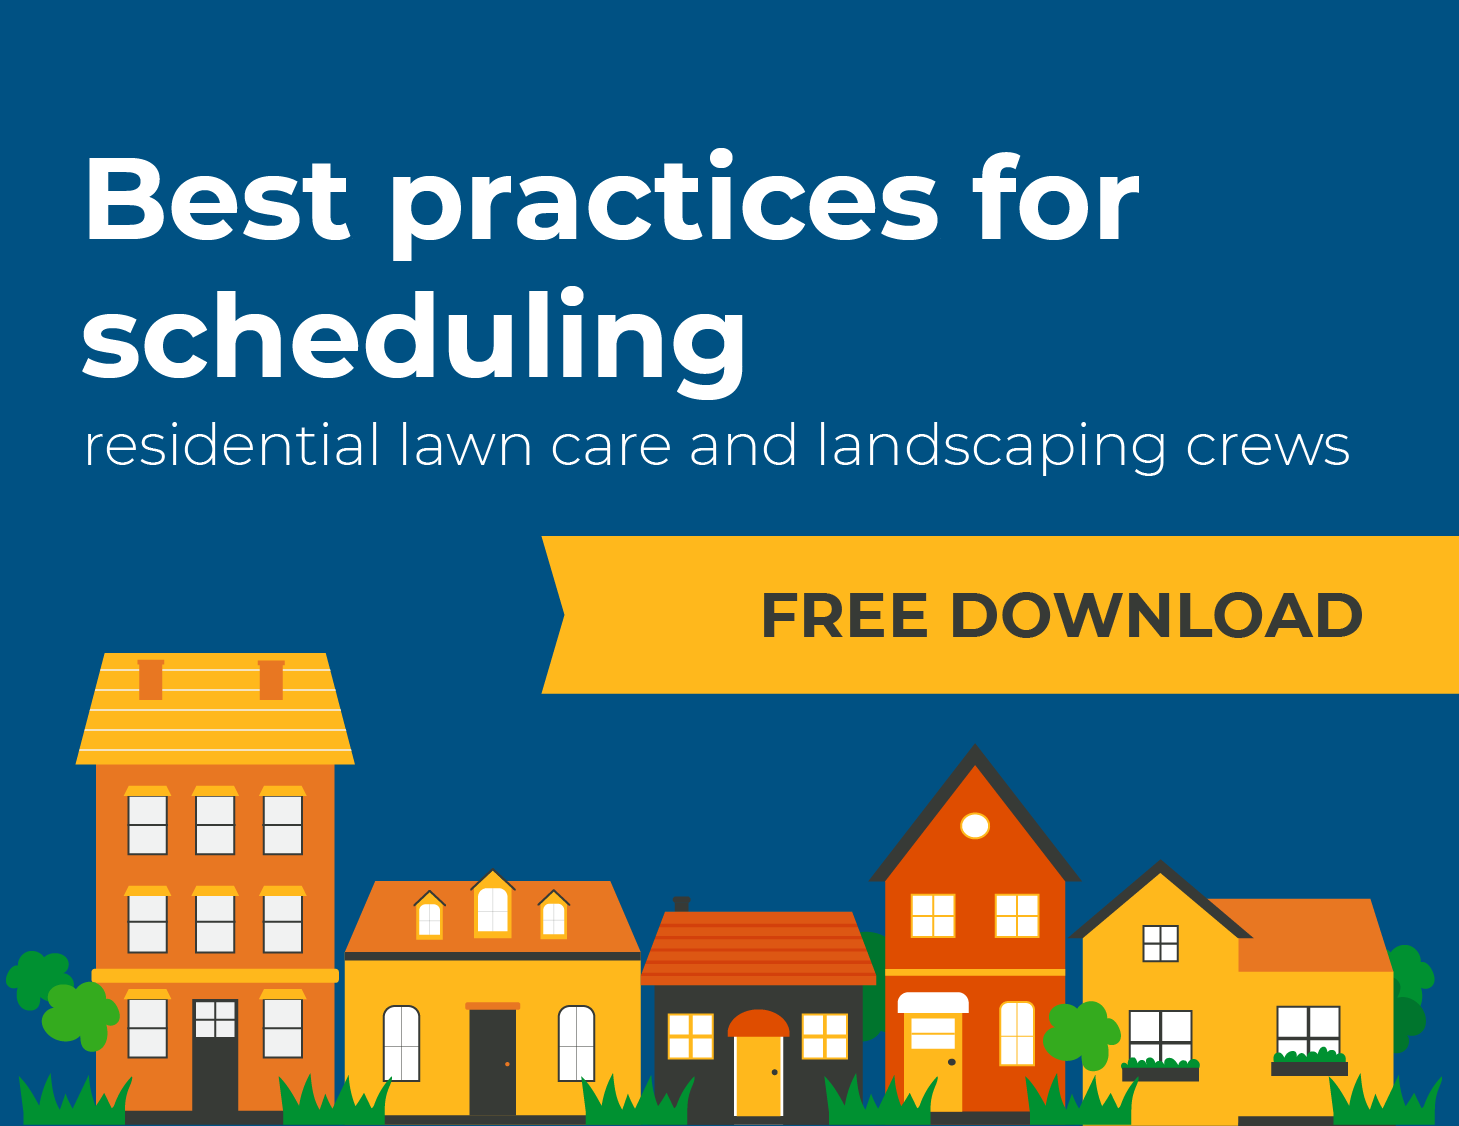 Best practices for scheduling residential lawn care and landscaping crews